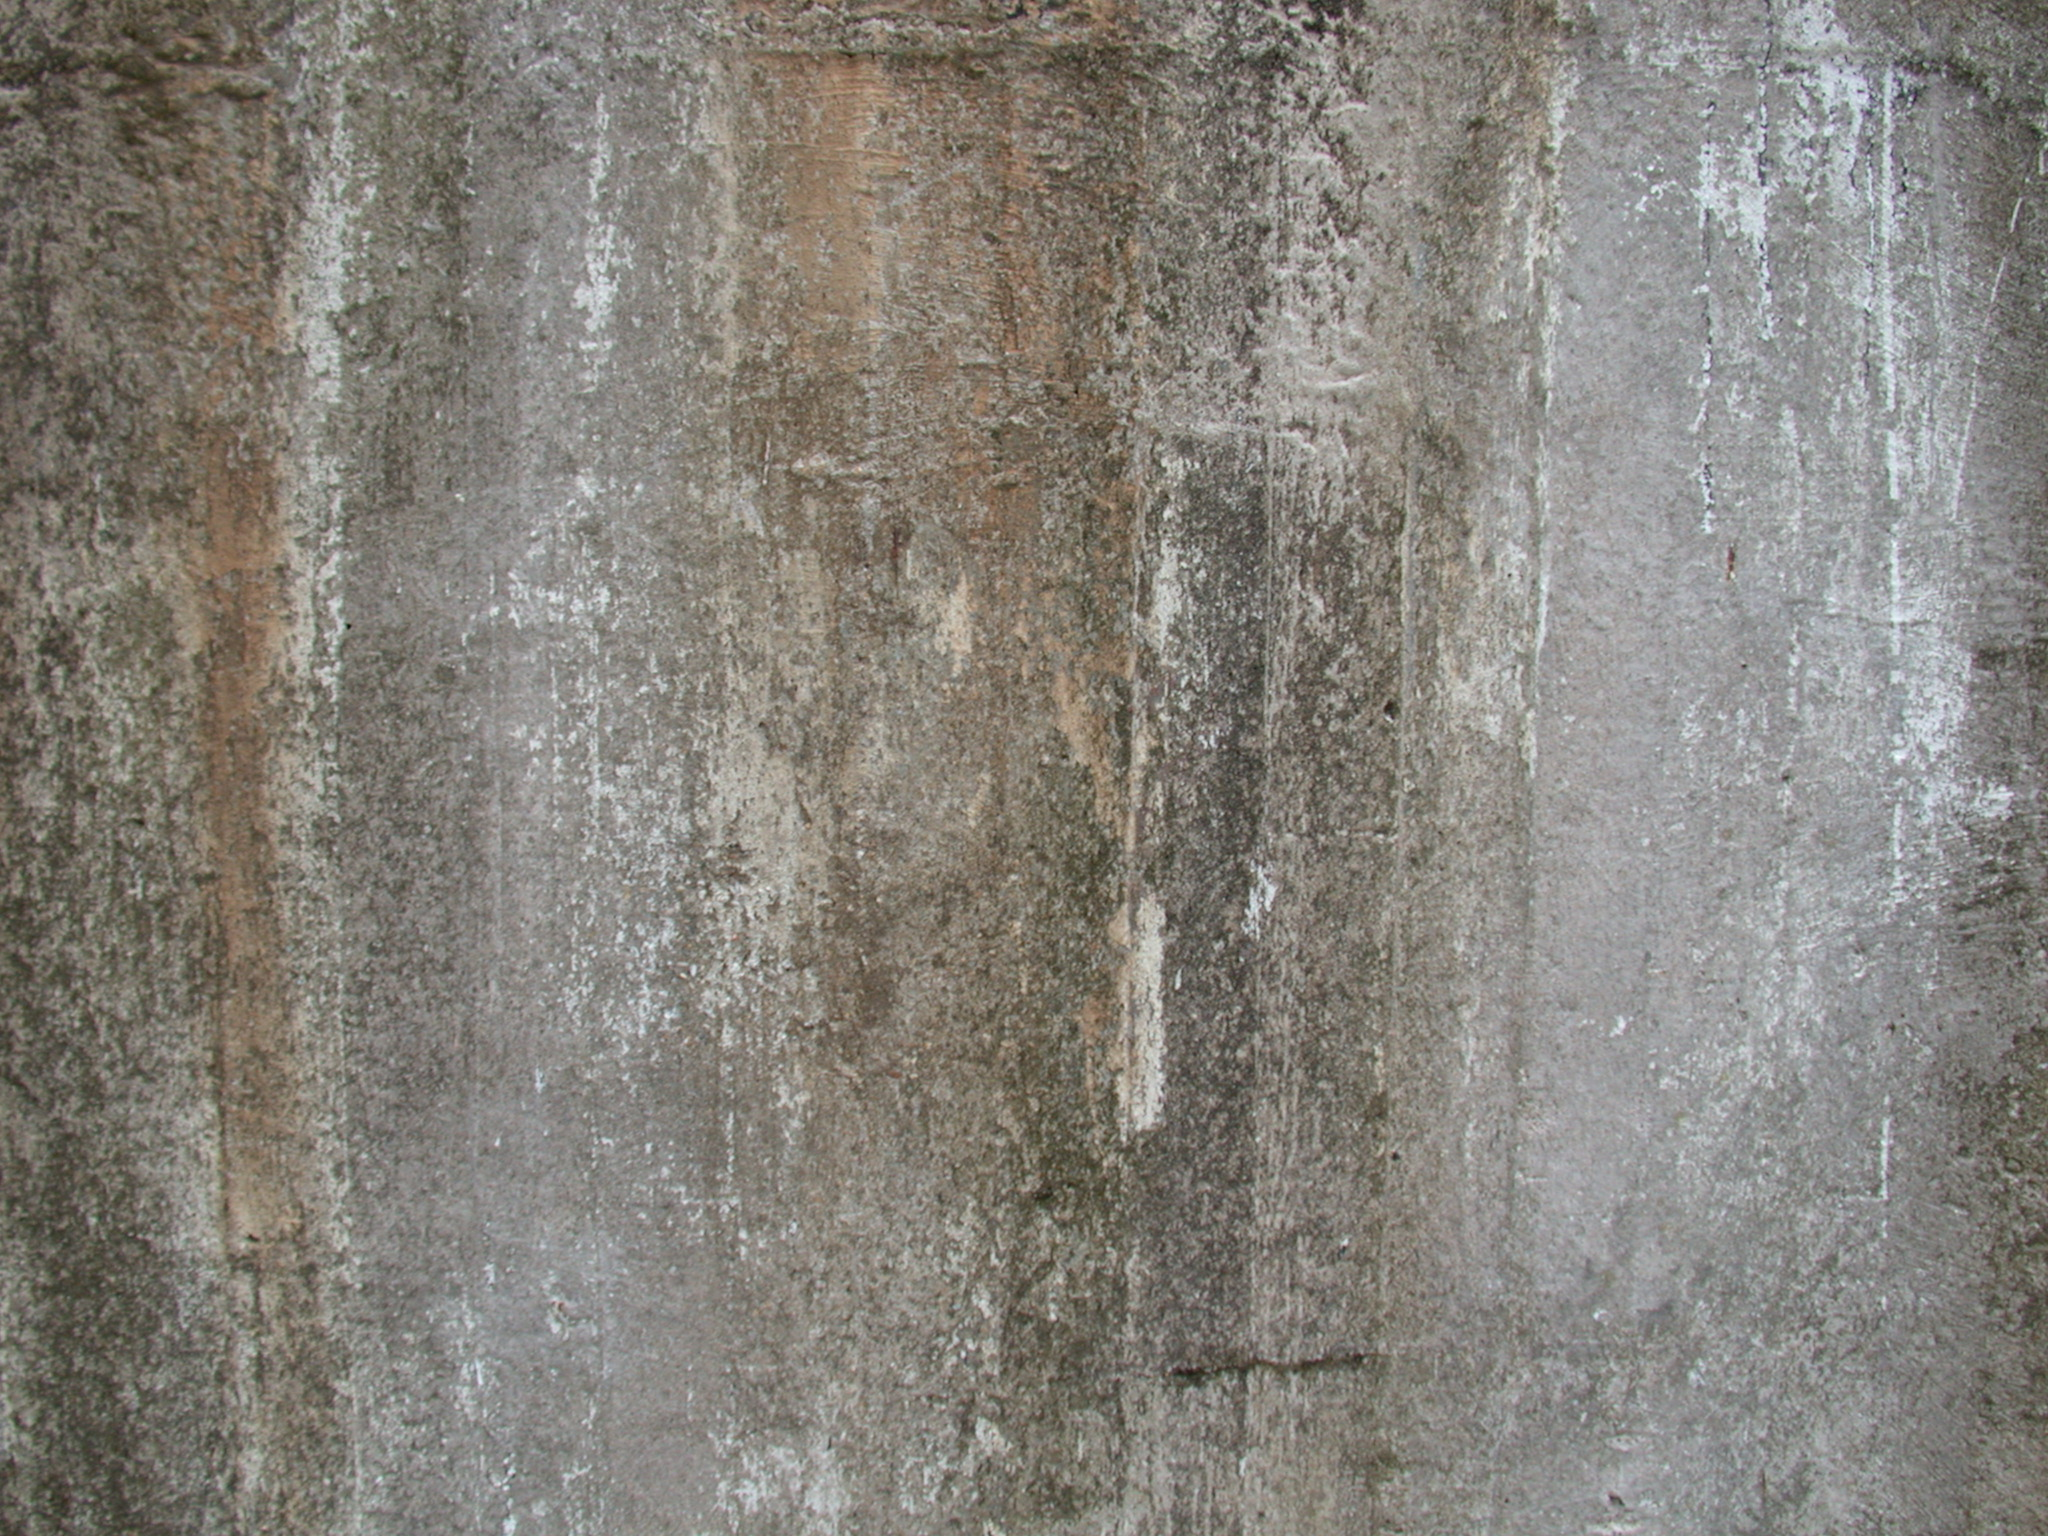 Image After Textures Walls Texture Concrete Dirty Dirt